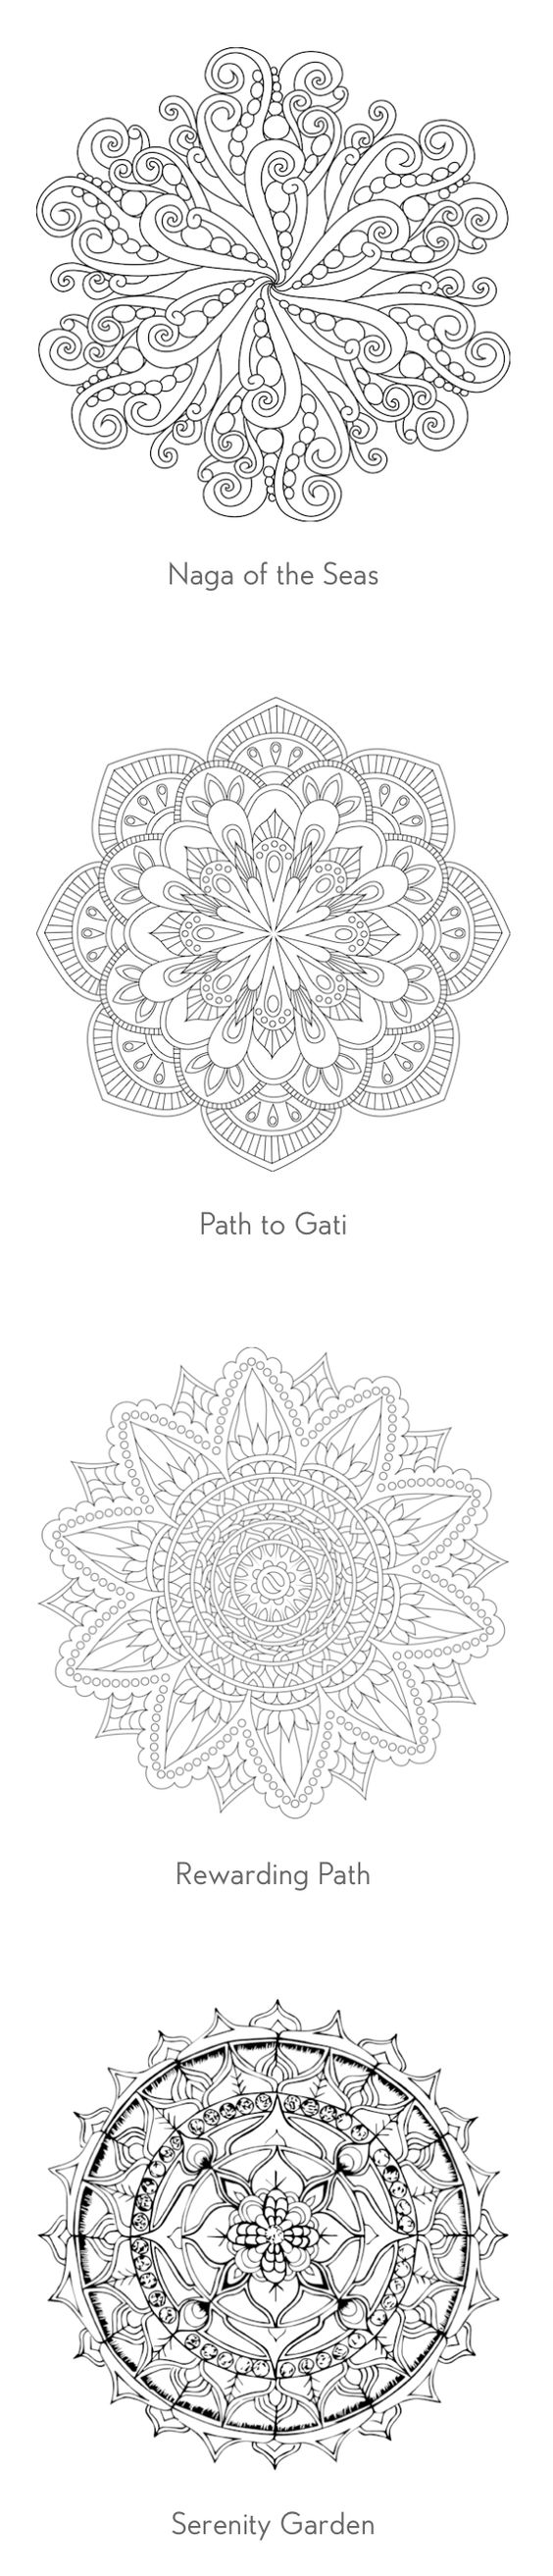 Over 60 free coloring pages of mandalas!